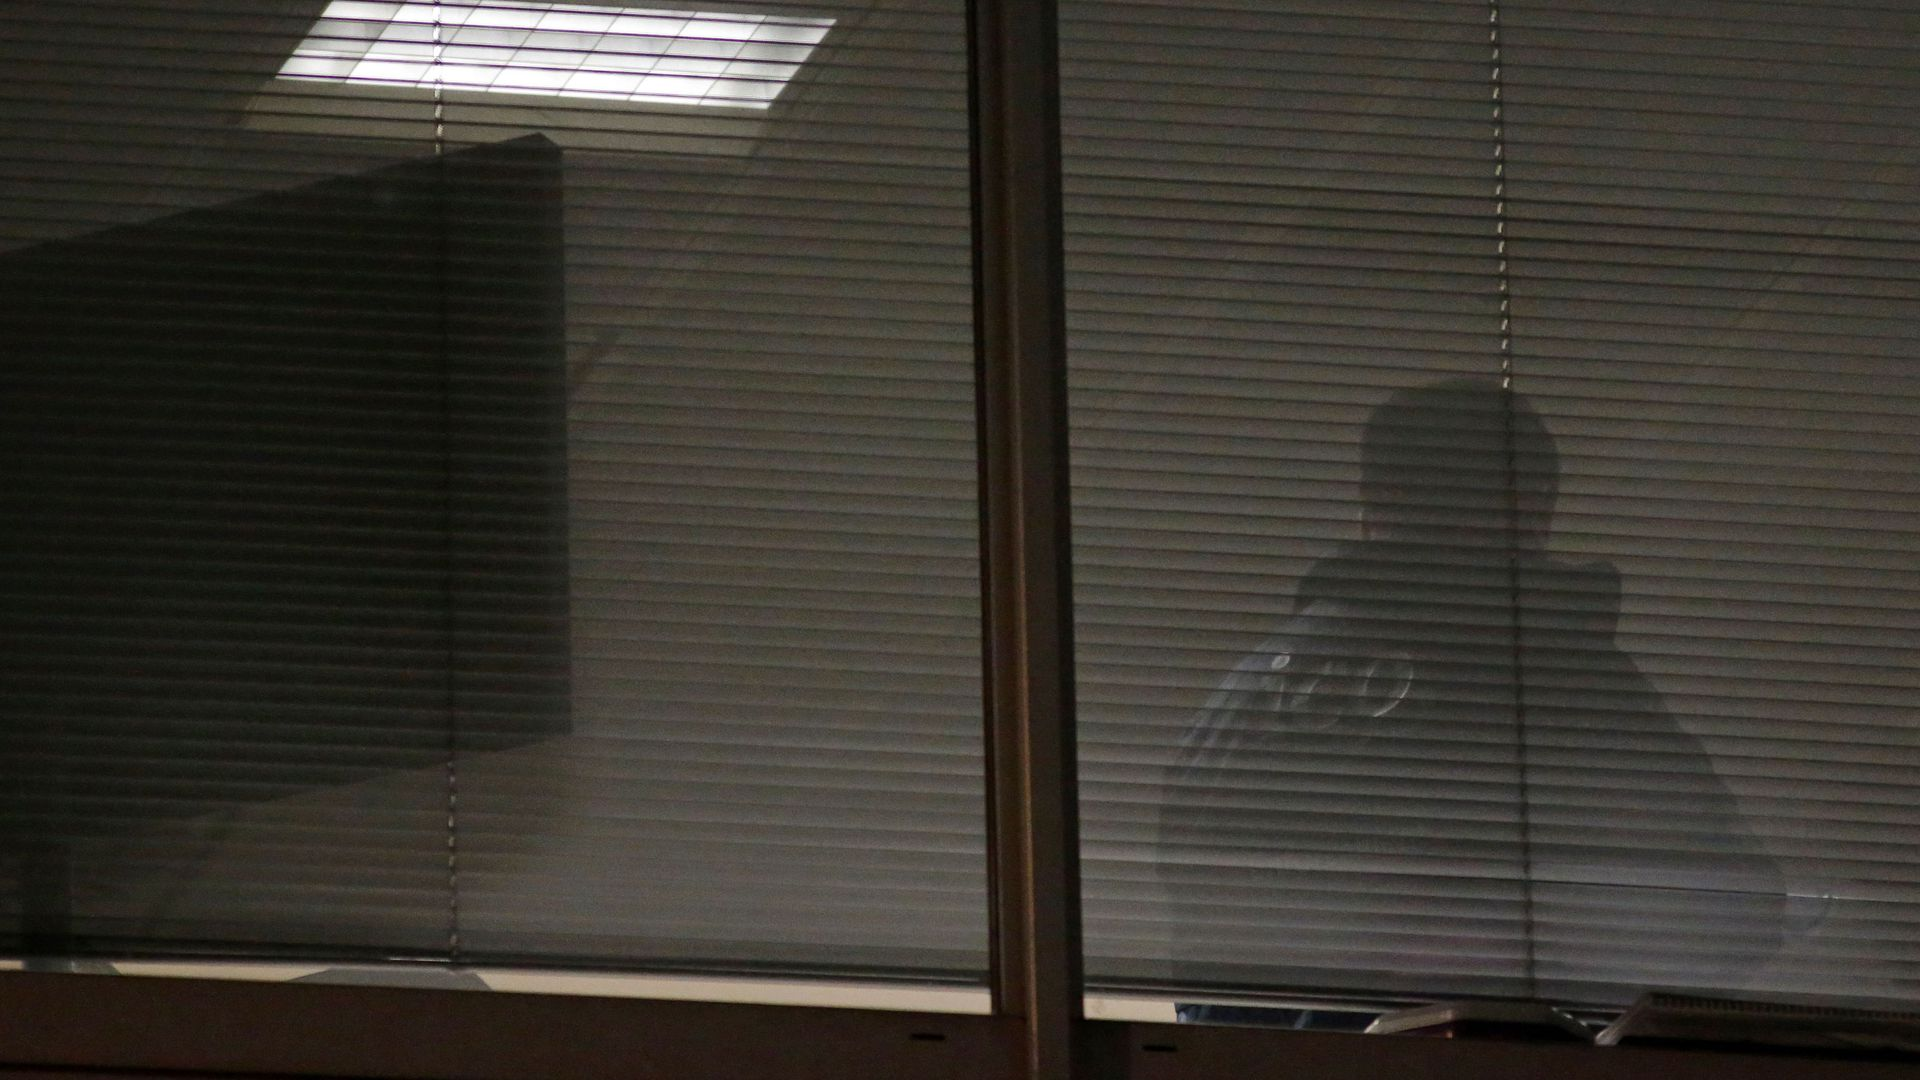 A man is seen through blinds inside the offices of Cambridge Analytica in central London.